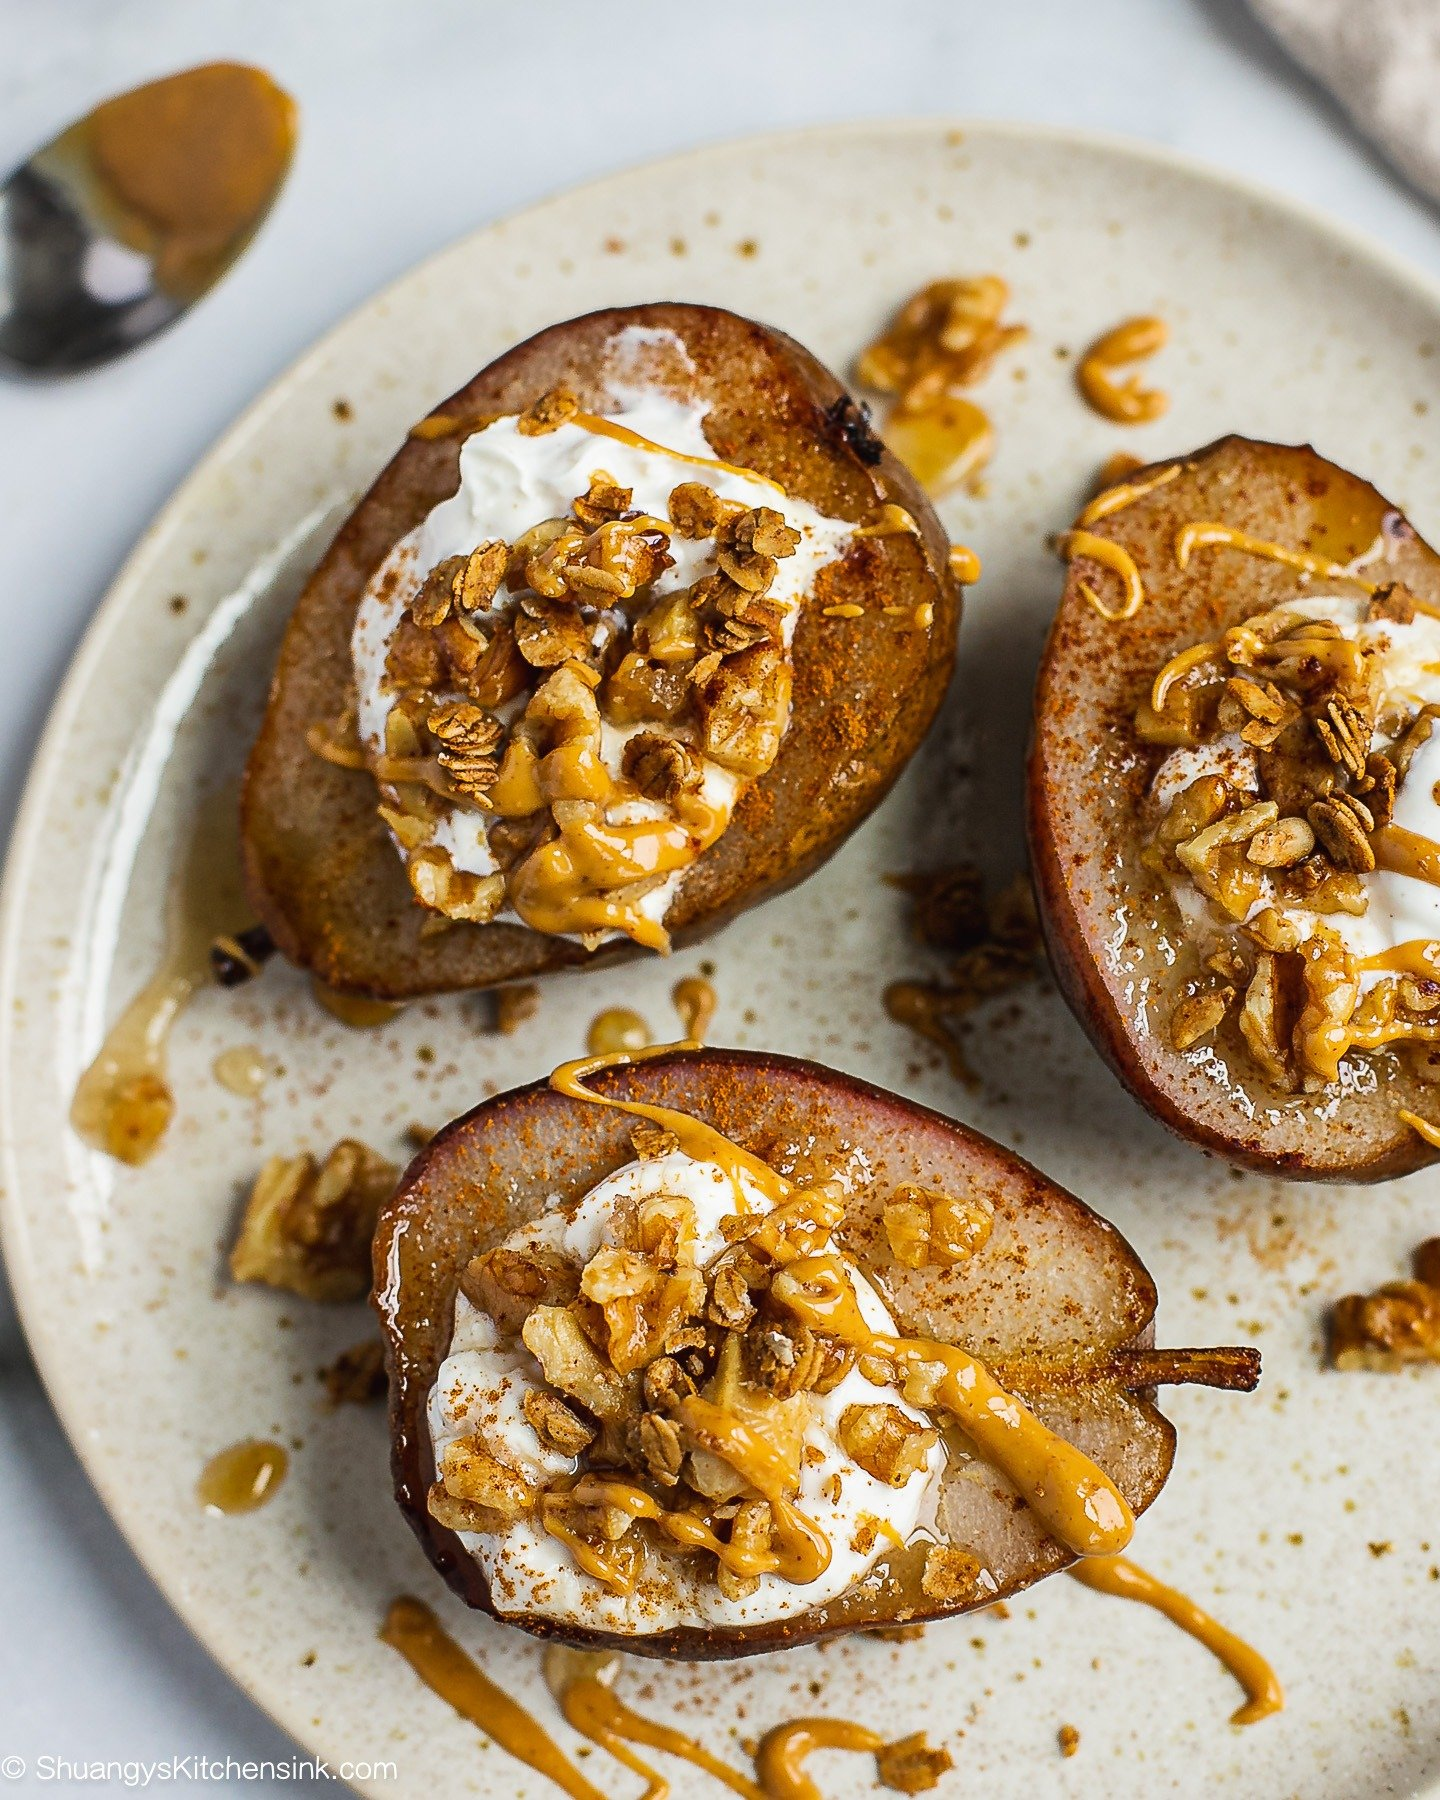 Whole Baked Pears with Honey Walnut